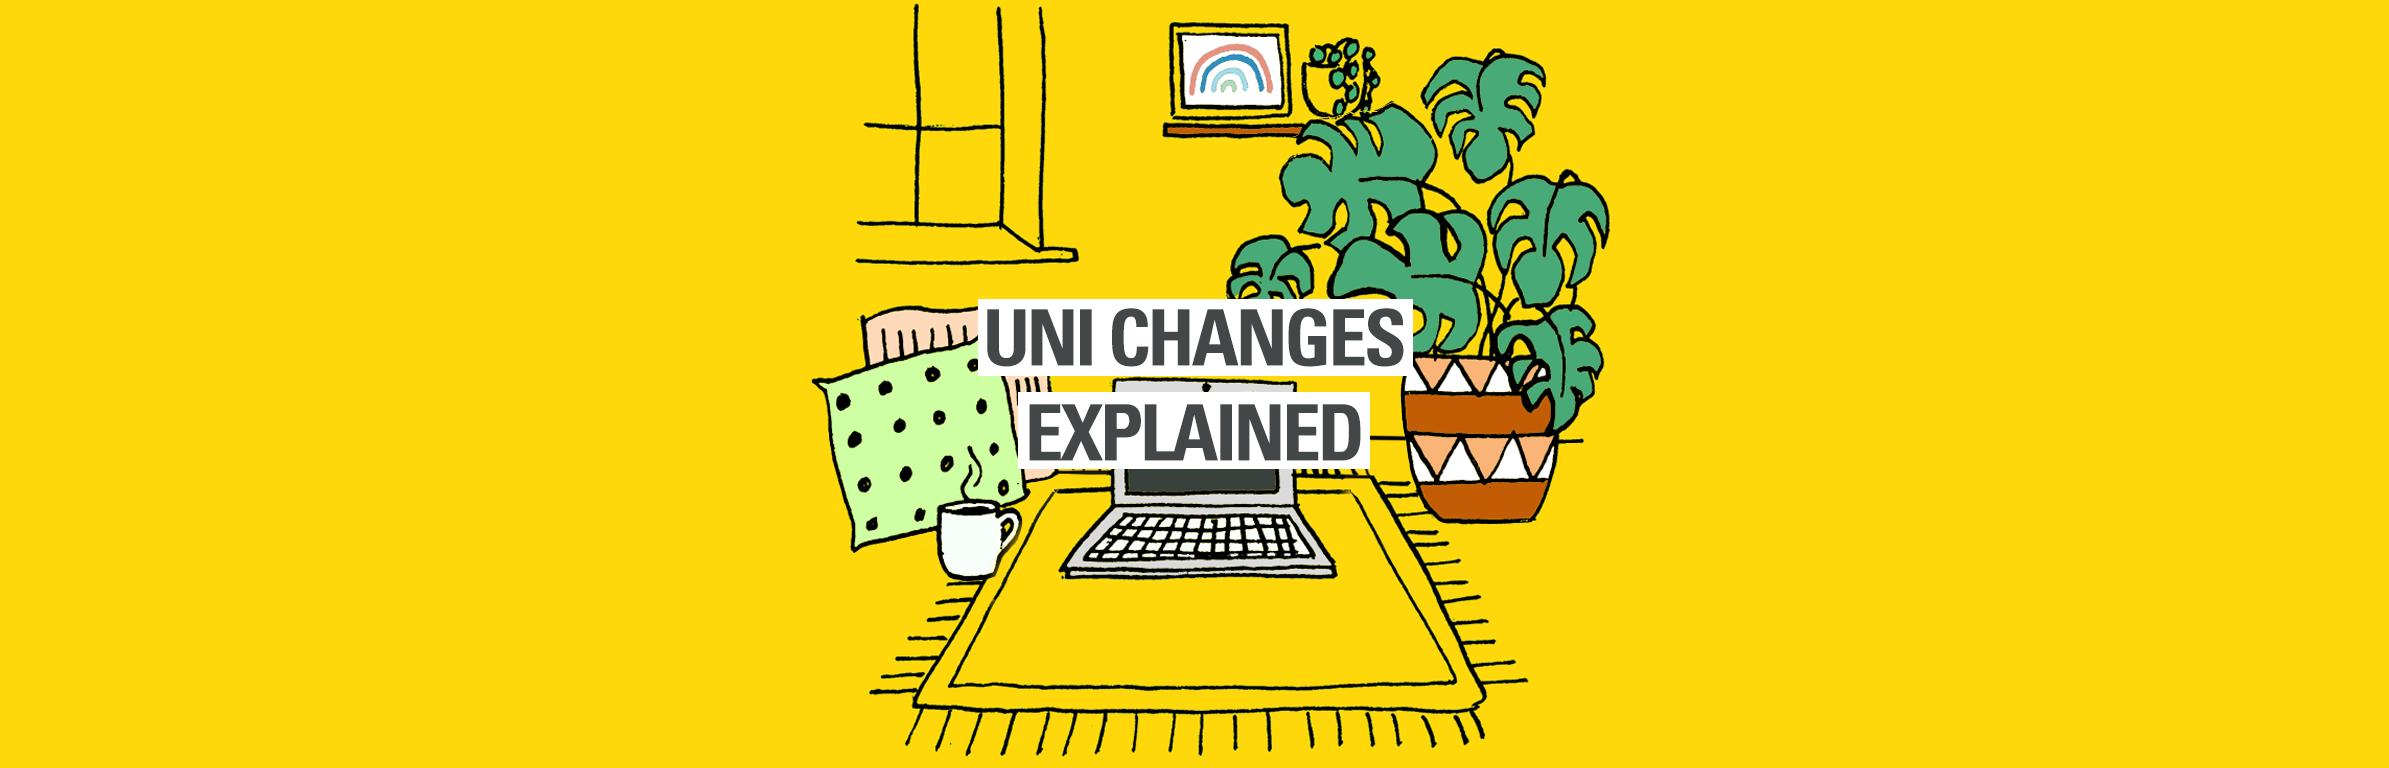 Uni changes explained hp